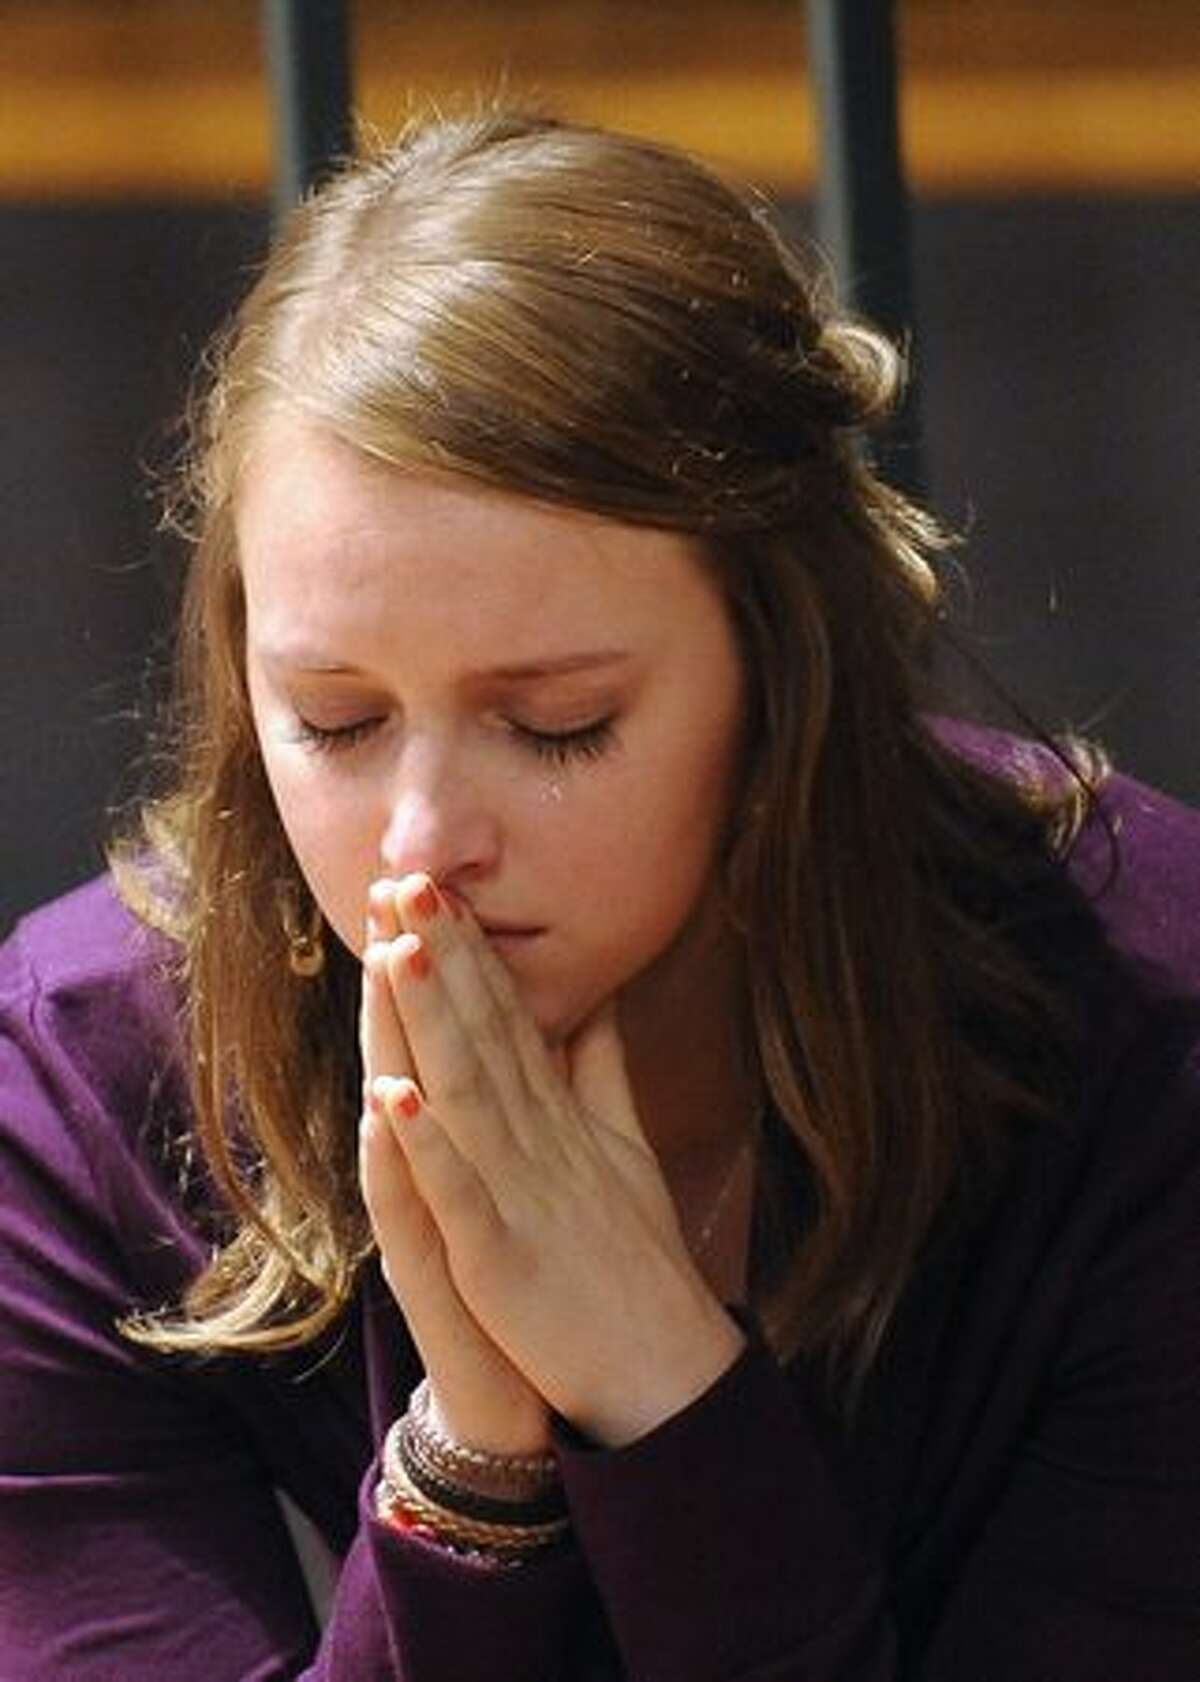 Deanna Knox, the sister of Amanda Knox reacts during the trial. Amanda Knox asked a jury not to put